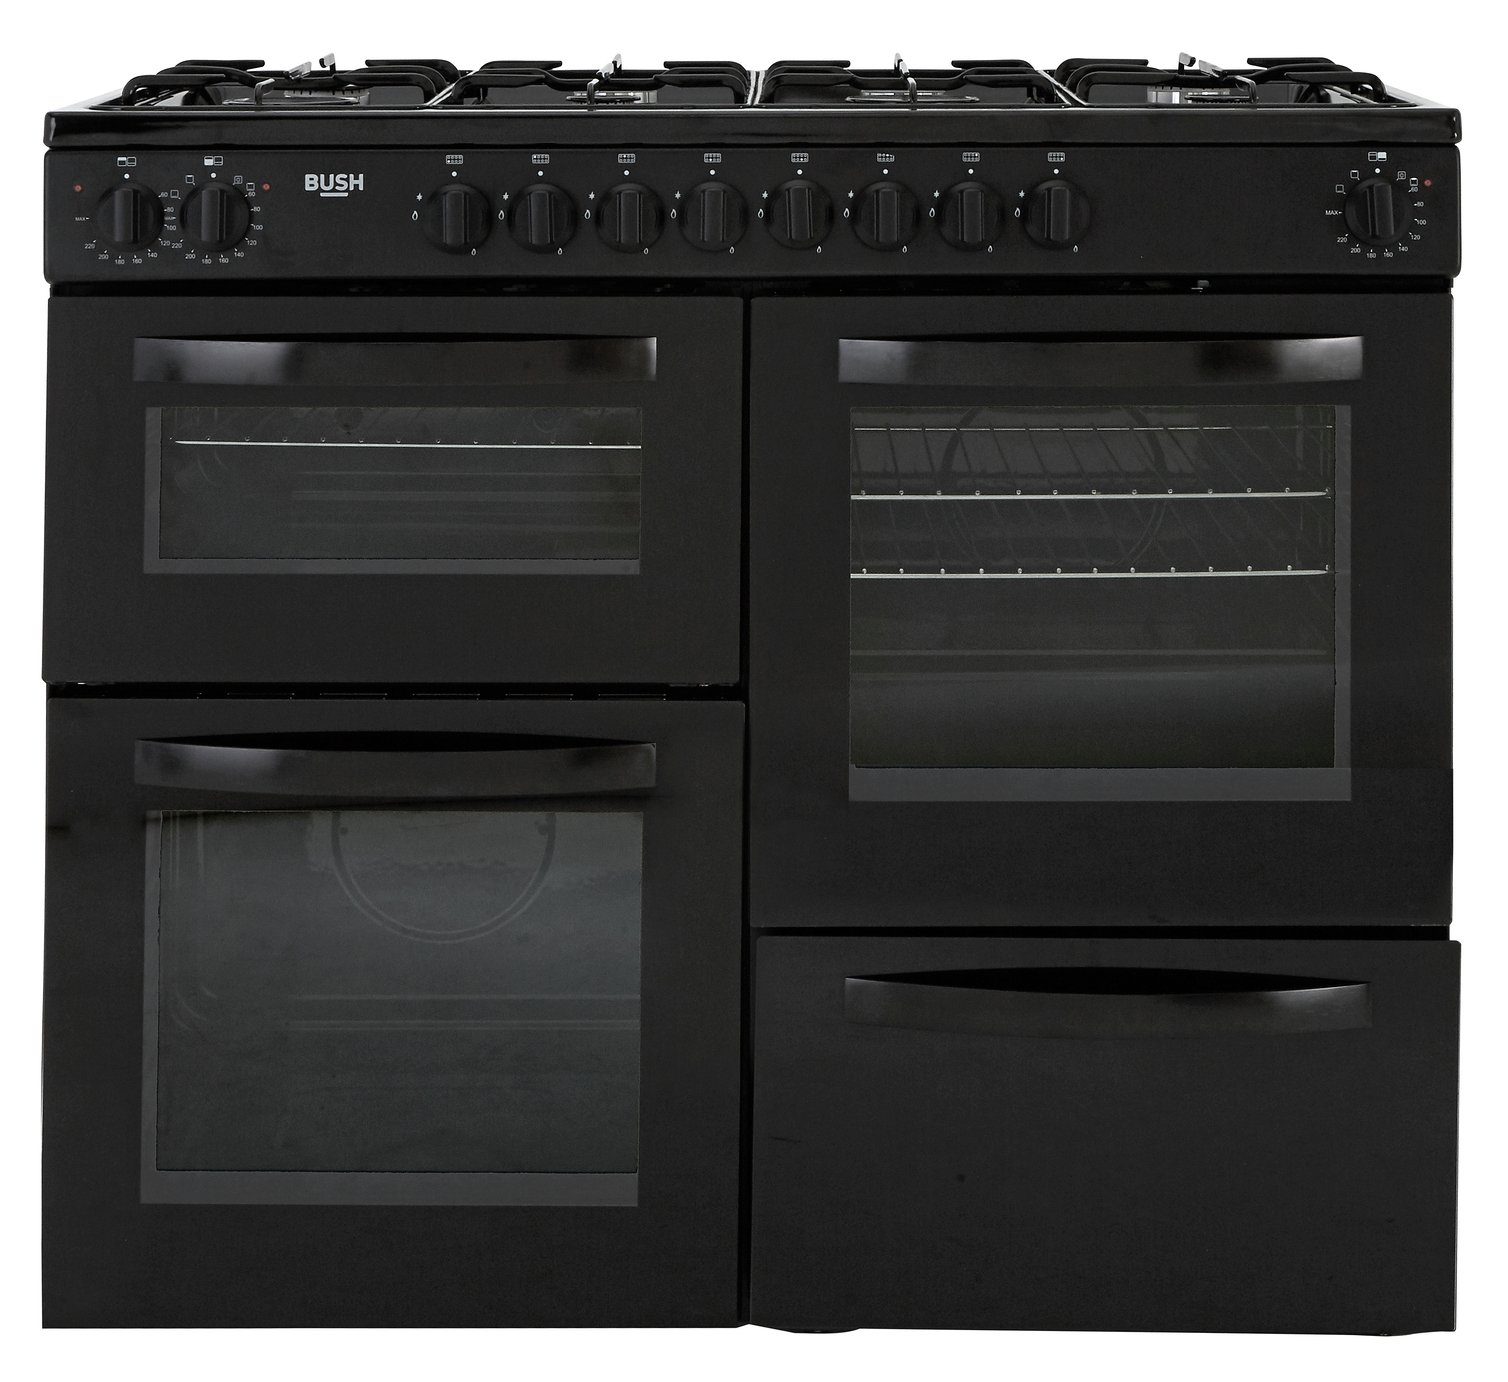 Bush BRC100DHEB 100cm Dual Fuel Range Cooker - Black